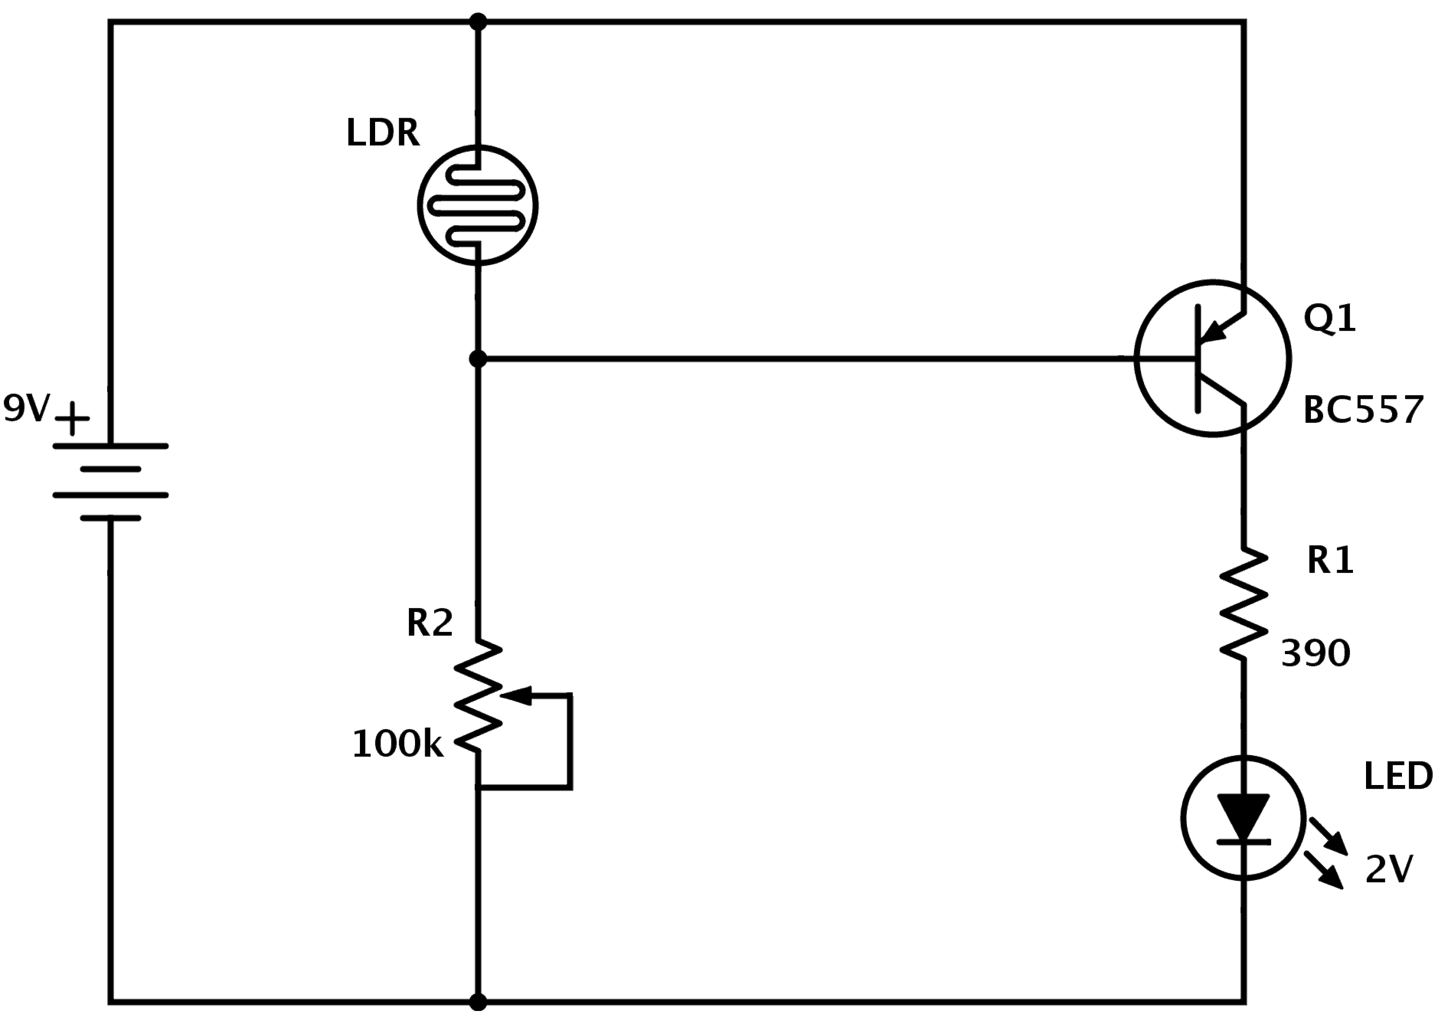 Ldr Circuit Diagram Build Electronic Circuits Simple Blinking Led With Pnp Transistor Dark Detector